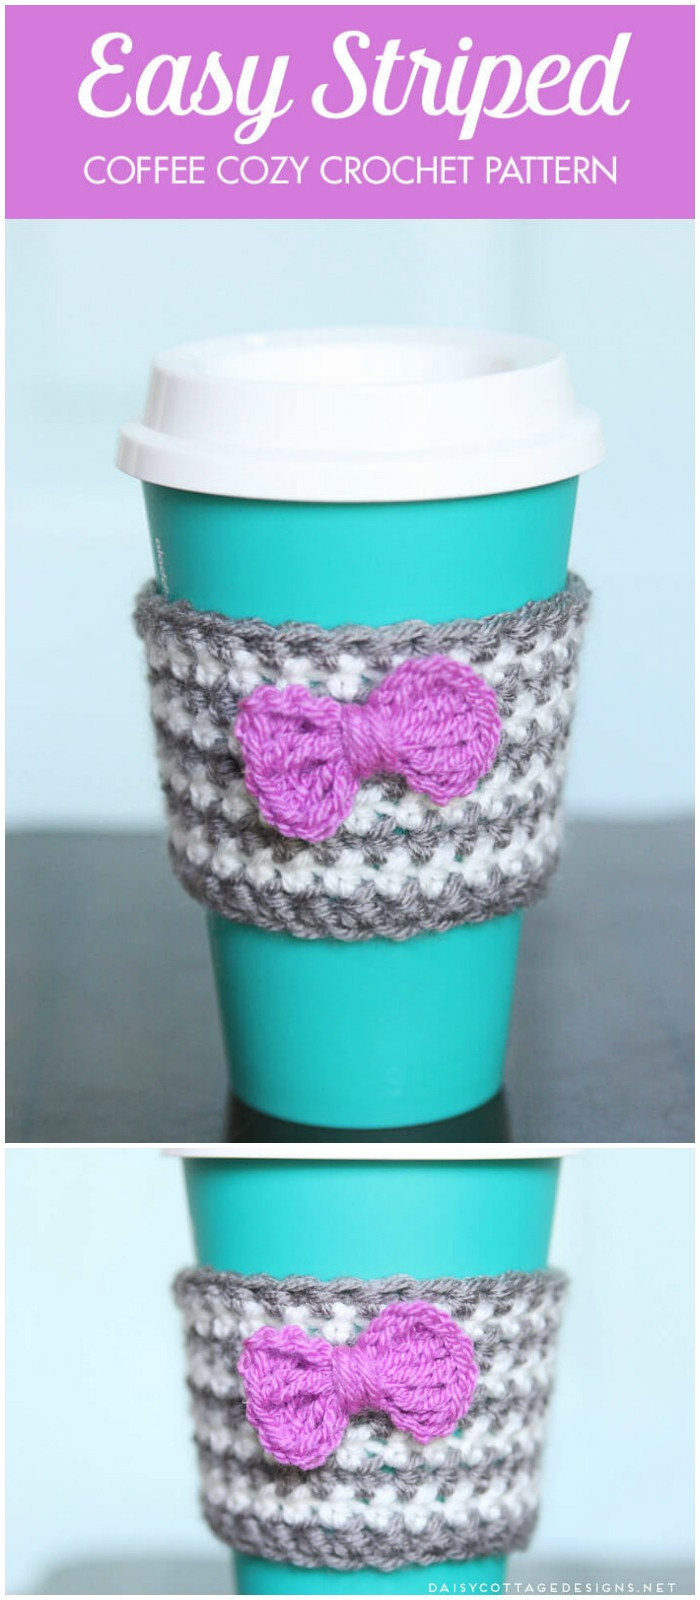 Crochet Coffee Cup Cozy Fresh 8 Crochet Cozy Patterns Free Crochet Patterns • Diy Home Of Crochet Coffee Cup Cozy Inspirational Crochet Coffee Cup Cozy Pattern Pdf Download Coffee Cup Cozy